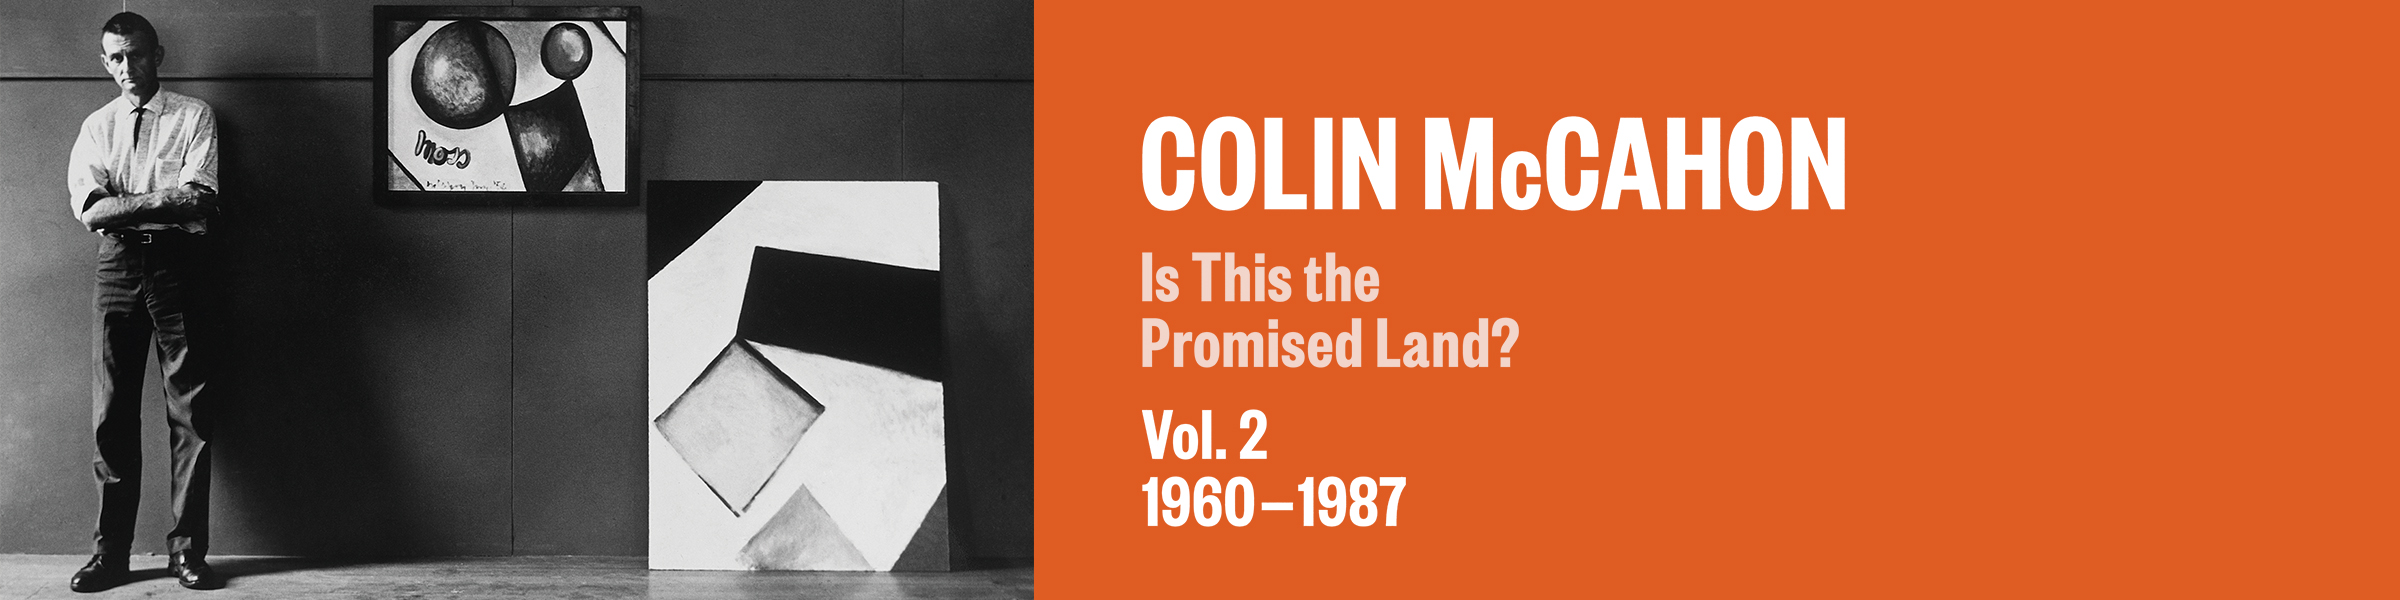 COLIN MCCAHON: IS THIS THE PROMISED LAND? VOL. 2 1960–1987